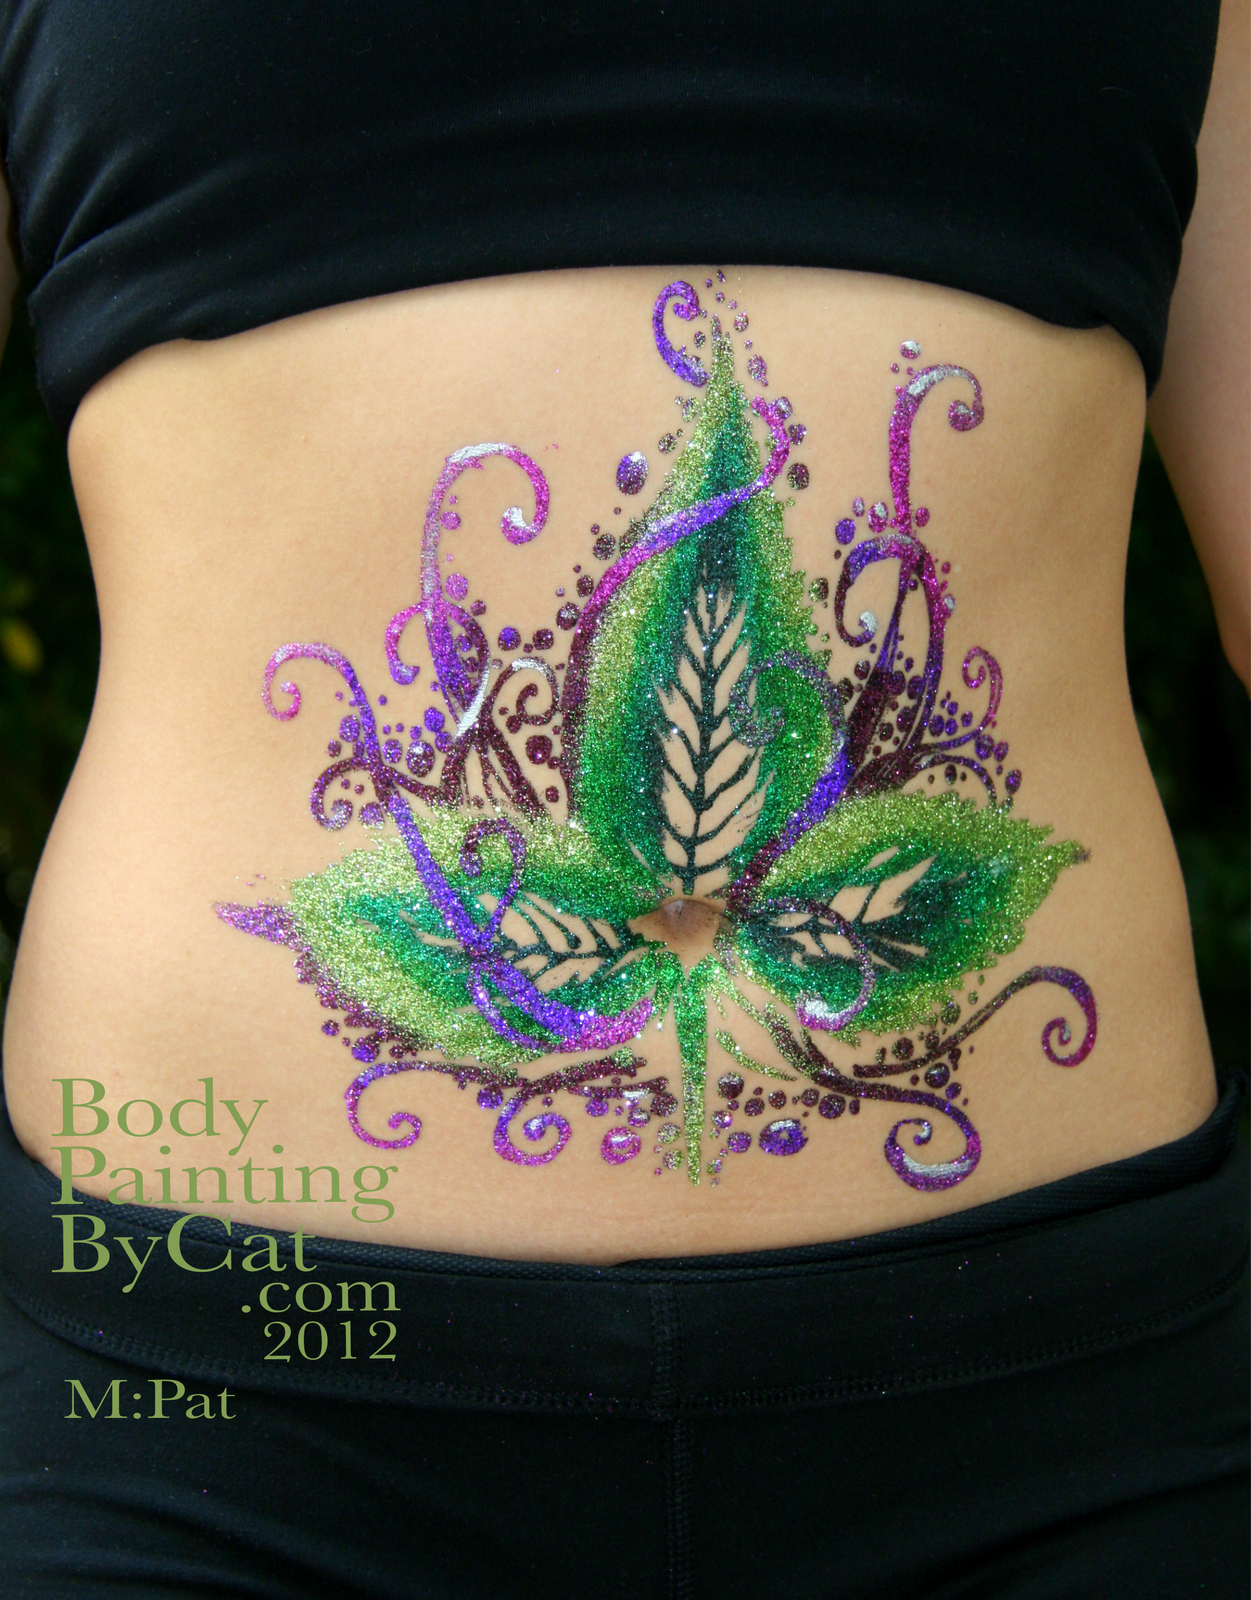 Yoga glitter tattoo body art body painting by cat for Where to get glitter tattoos